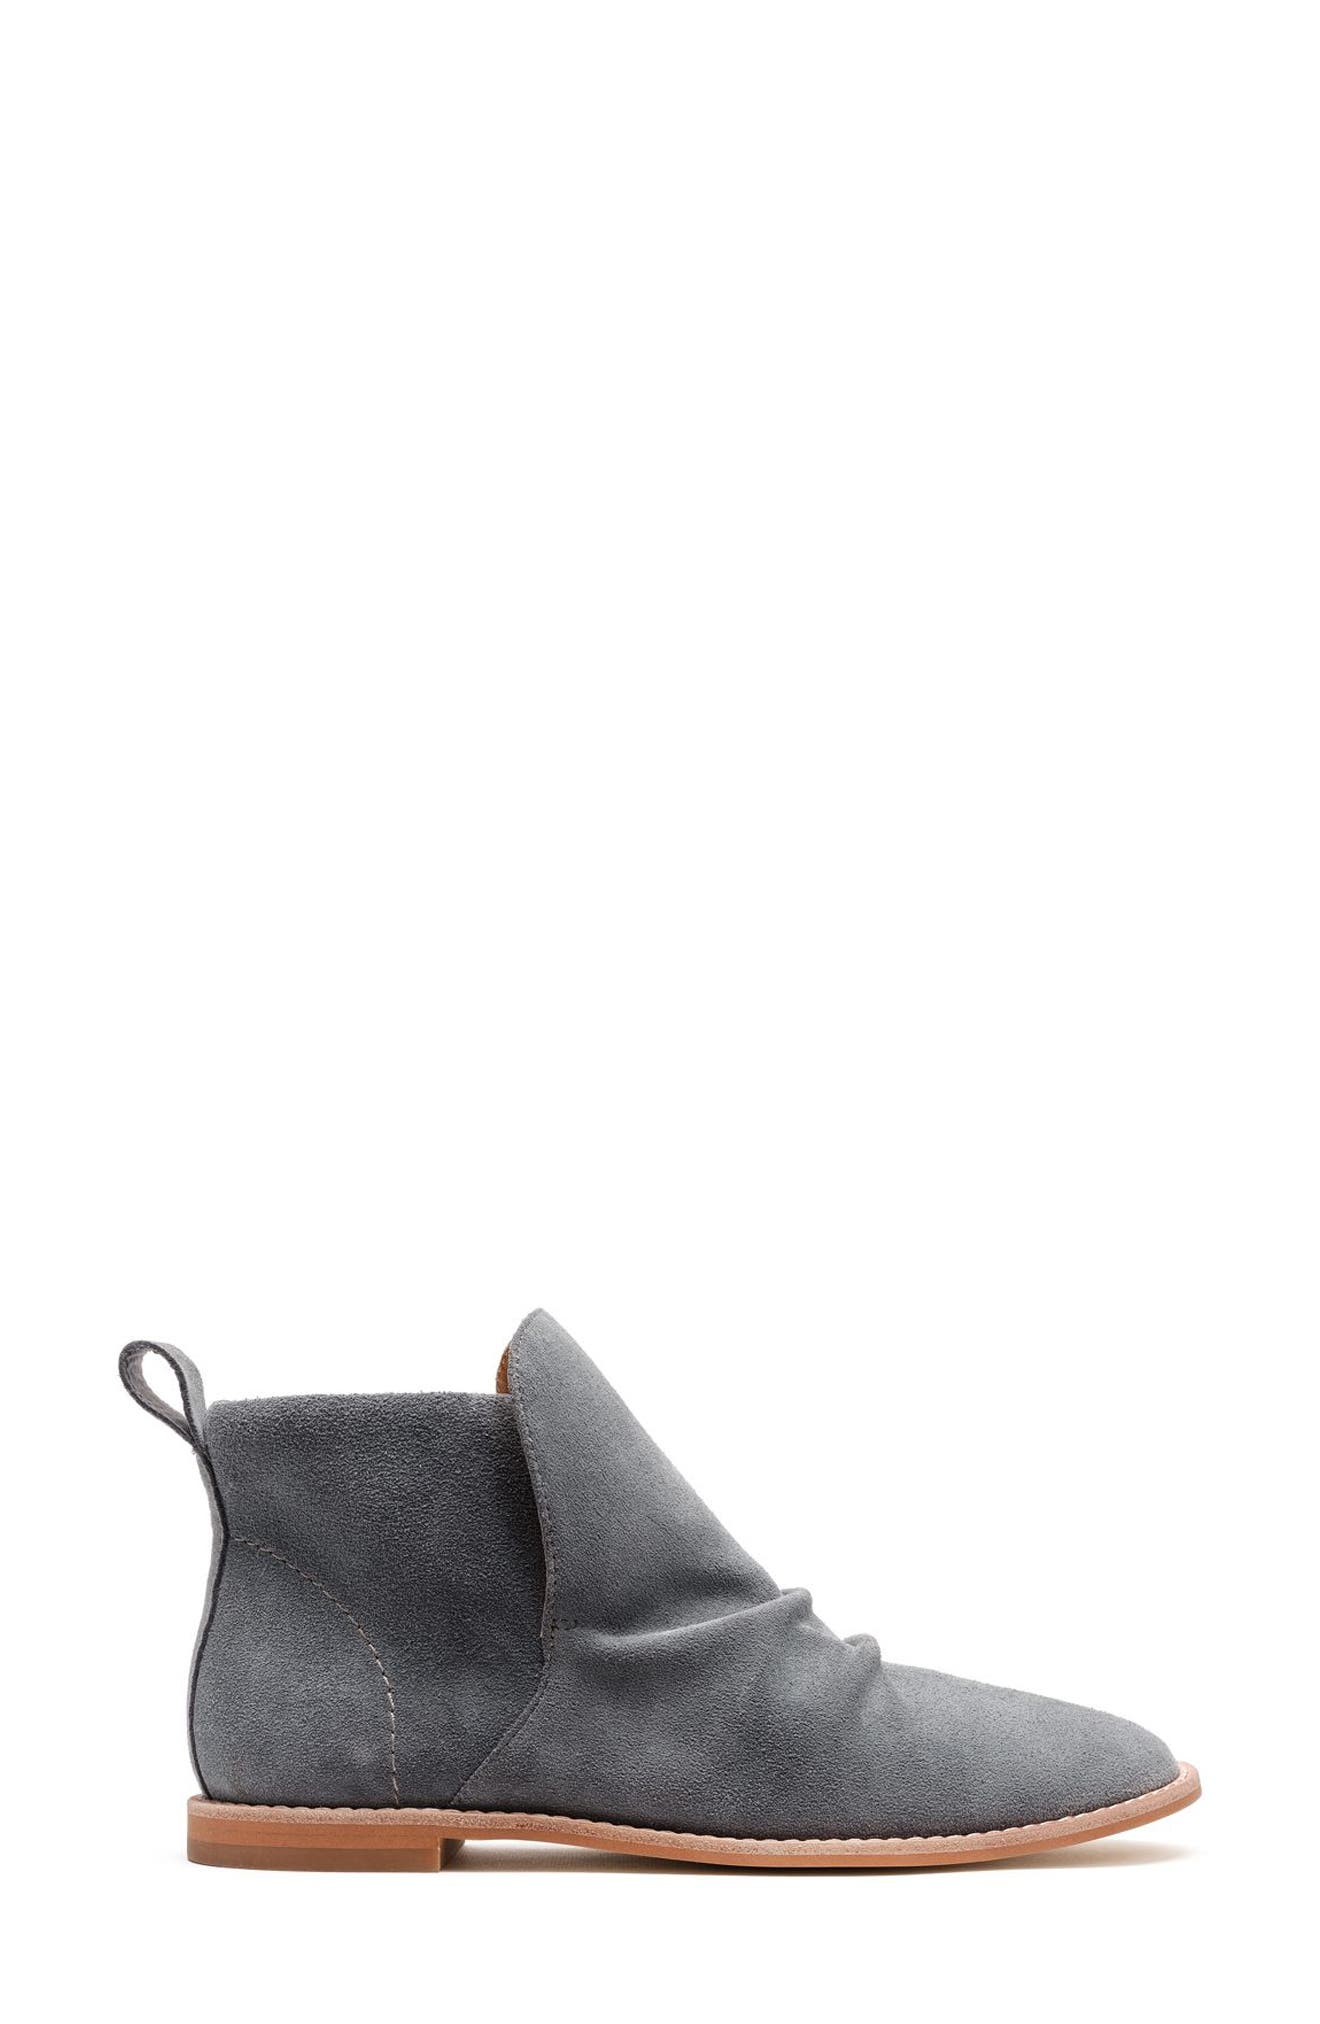 Macey Bootie,                             Alternate thumbnail 9, color,